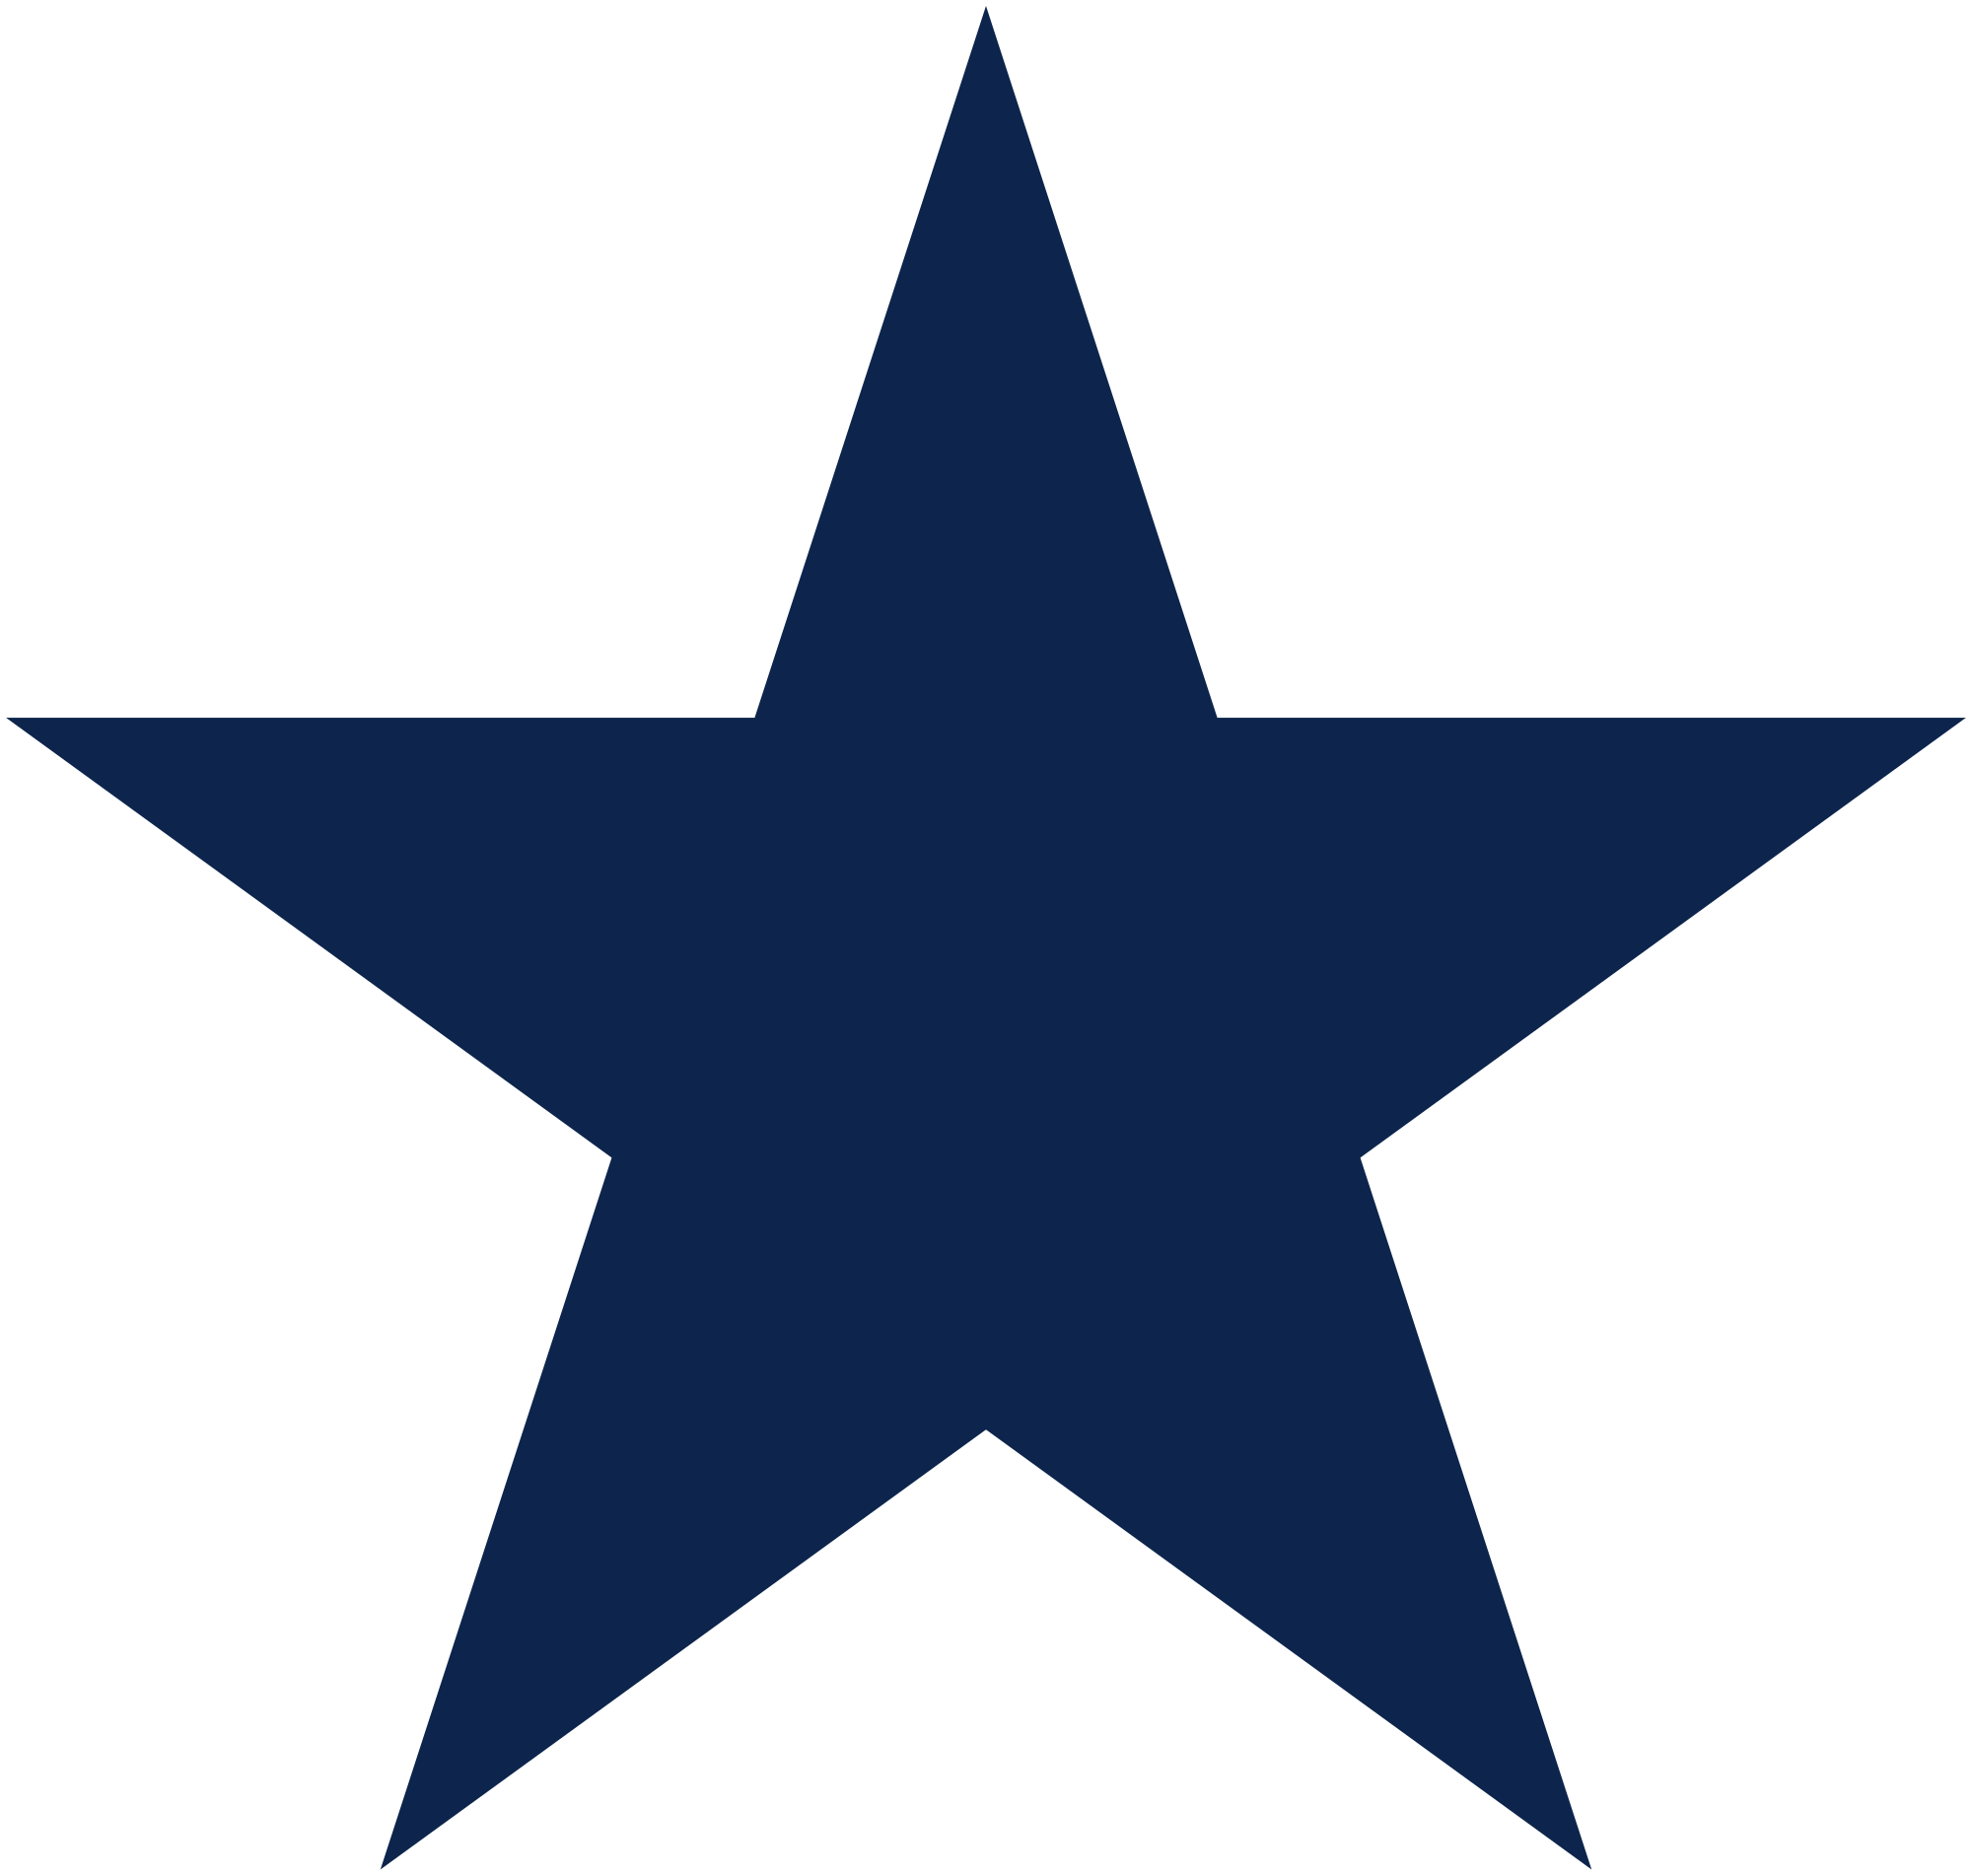 Dallas cowboys clipart free download on png.